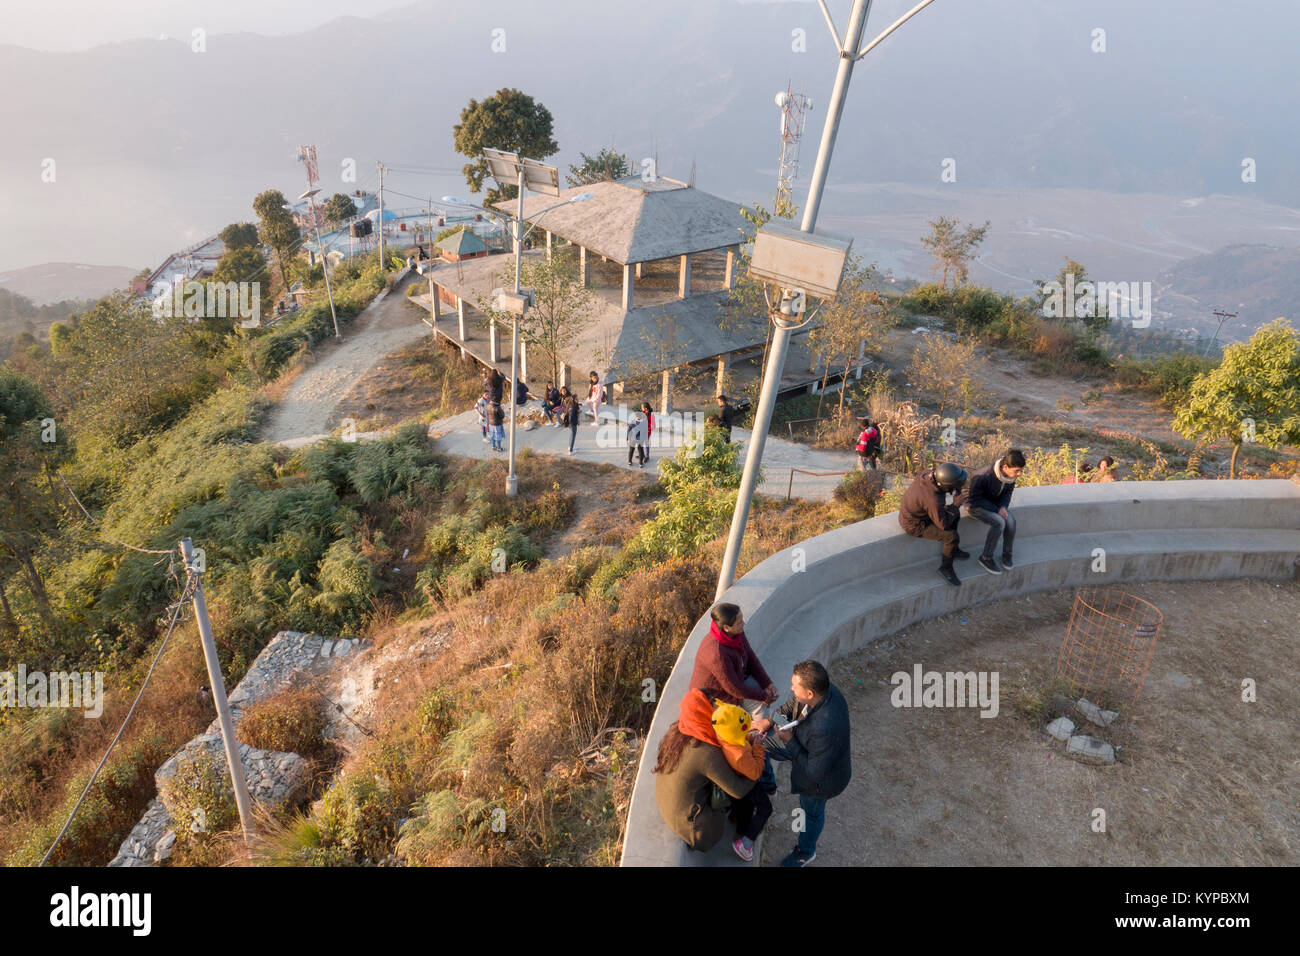 People descend the lookout just after sunrise at Sarankot, Pokhara, Nepal - Stock Image